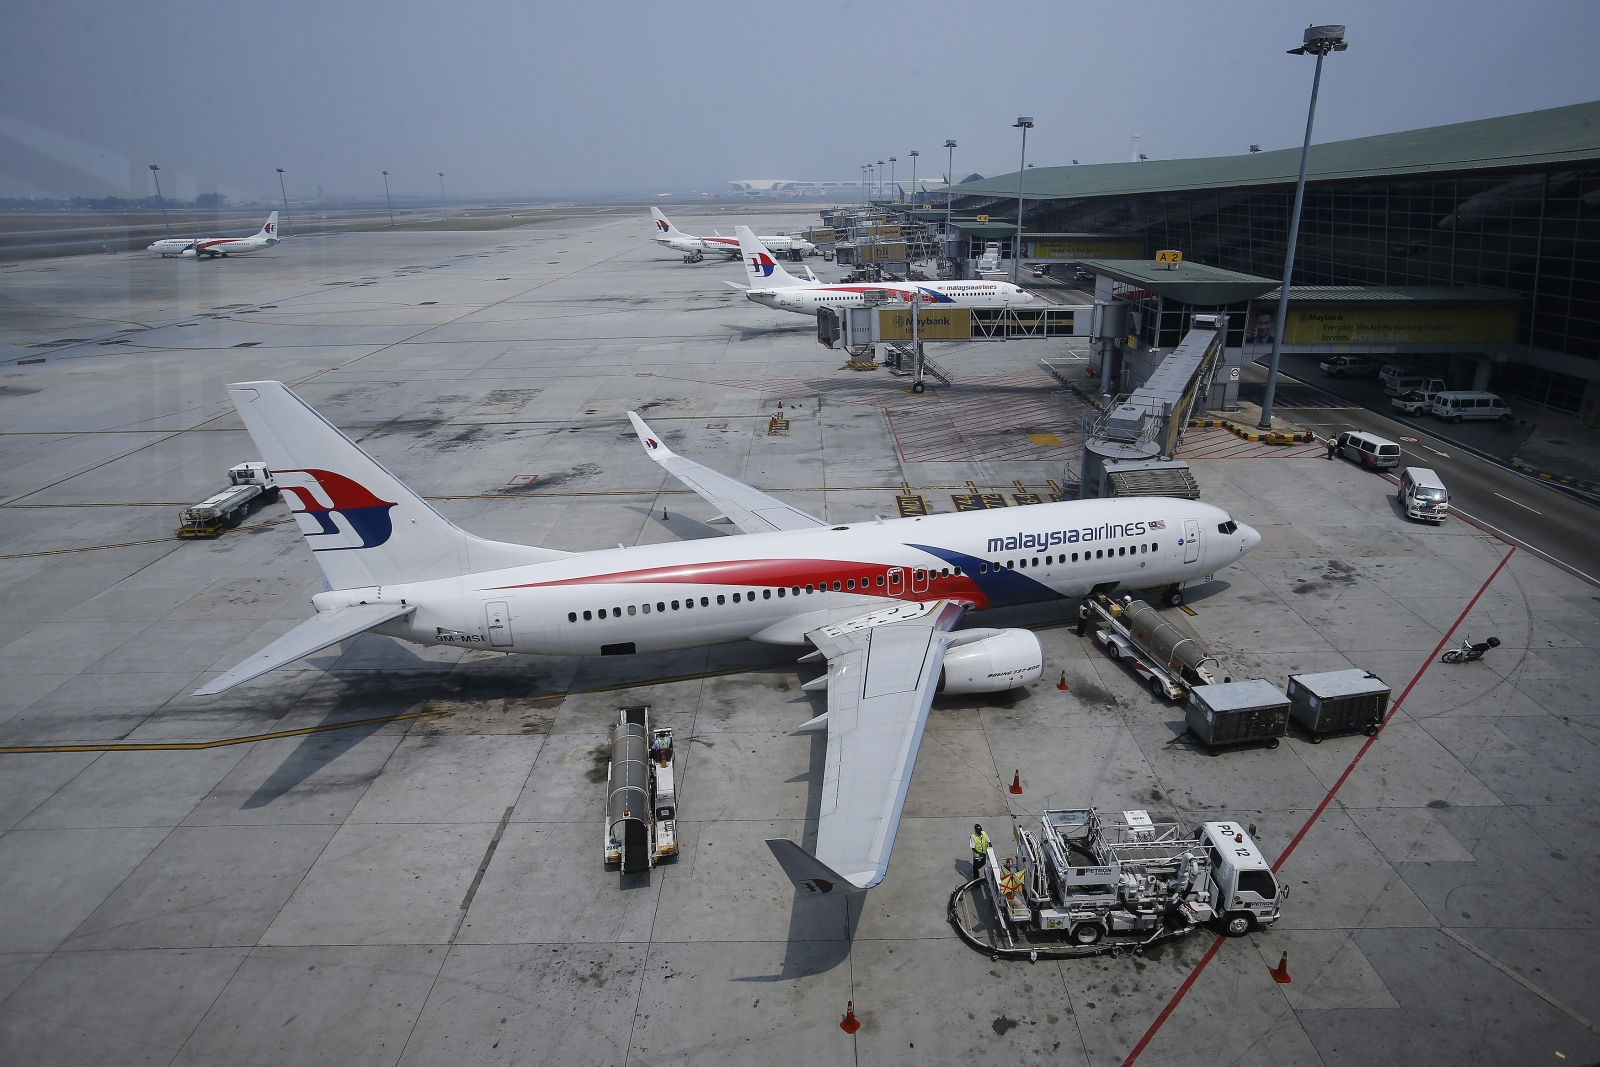 Malaysia Airlines MH370 missing and conspiracy theories